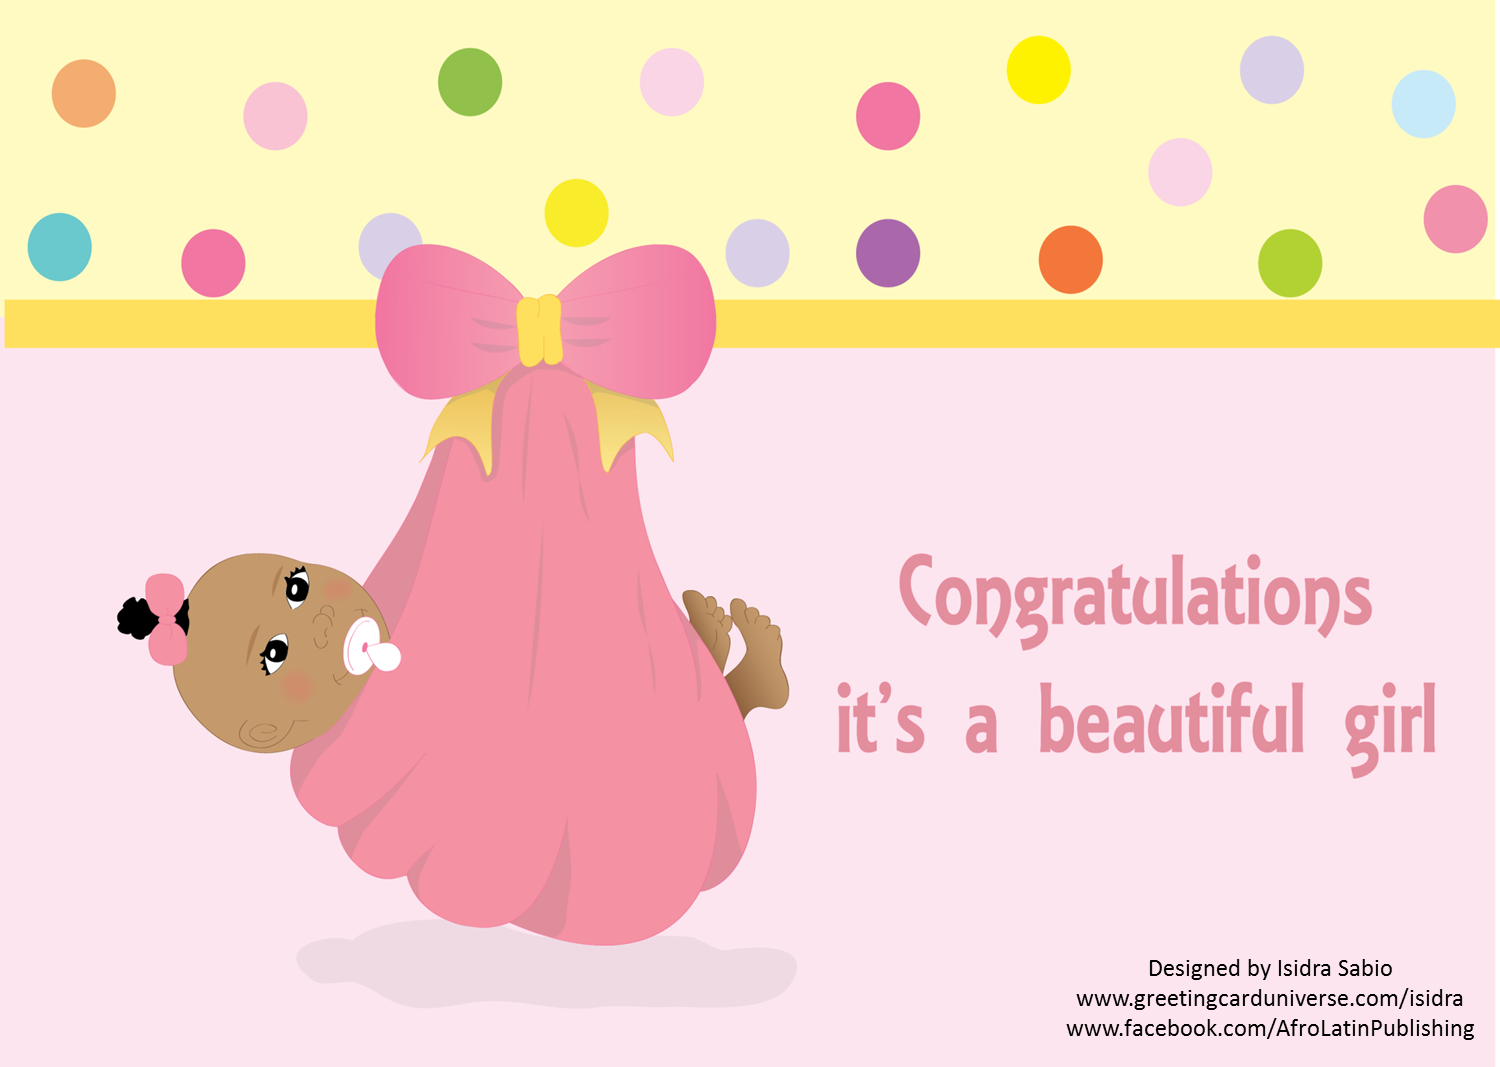 Right clipart congratulation On images a born TO